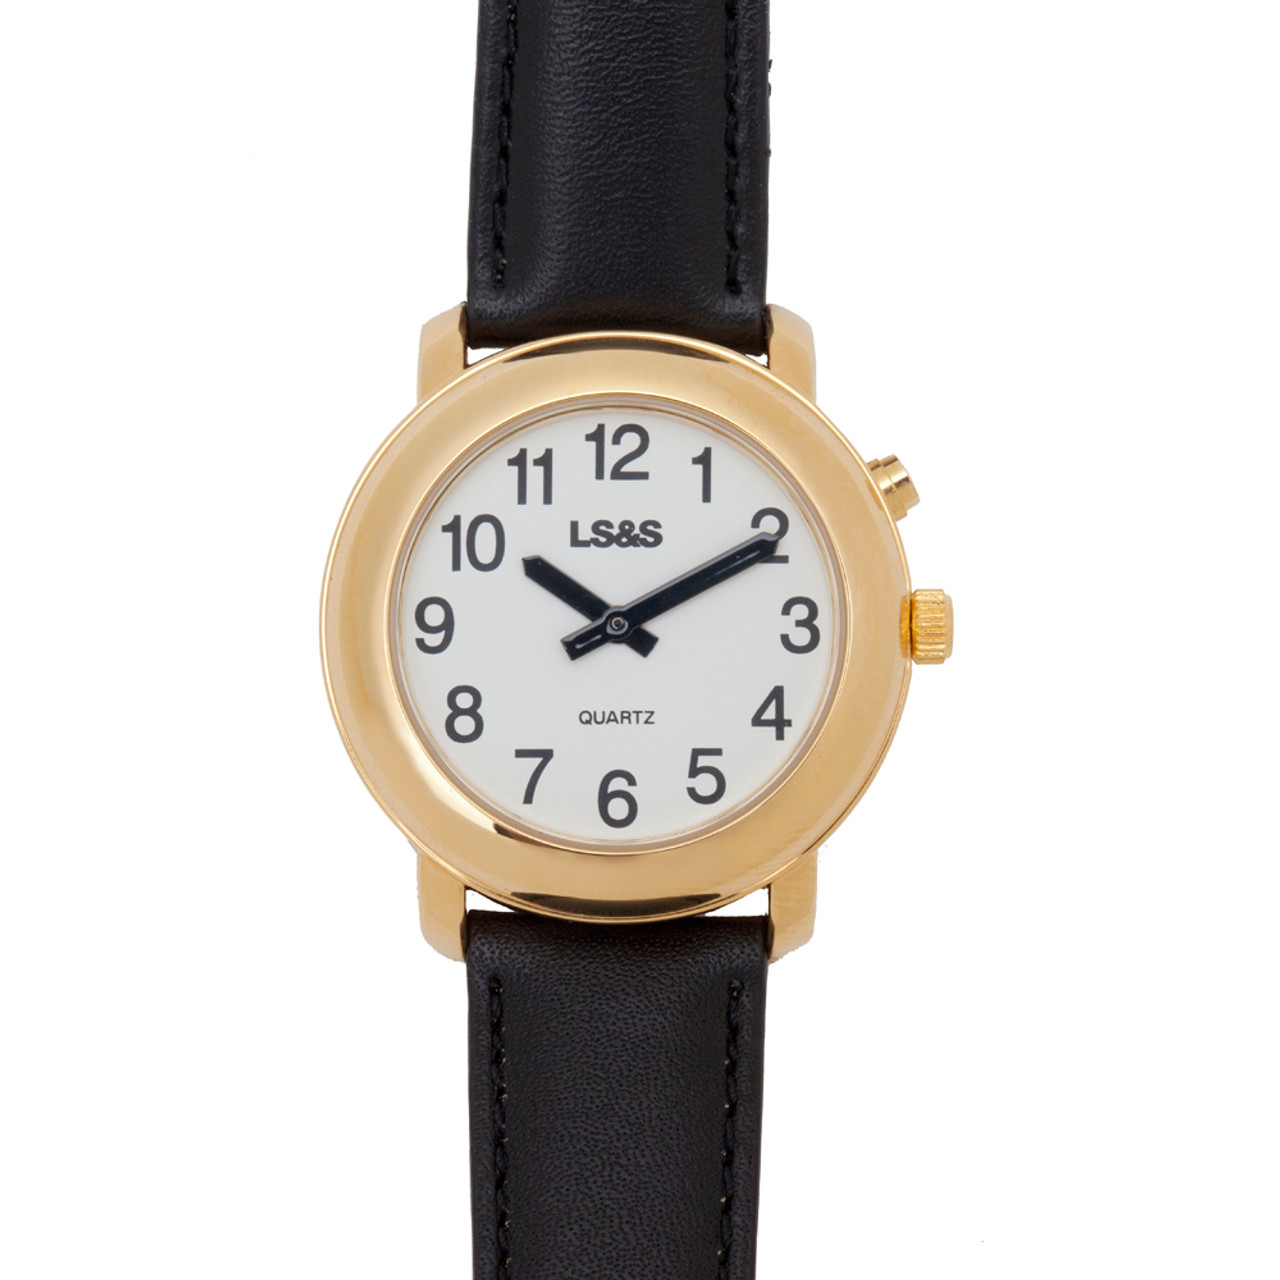 Gold One Button Talking Watch - Black Leather Band